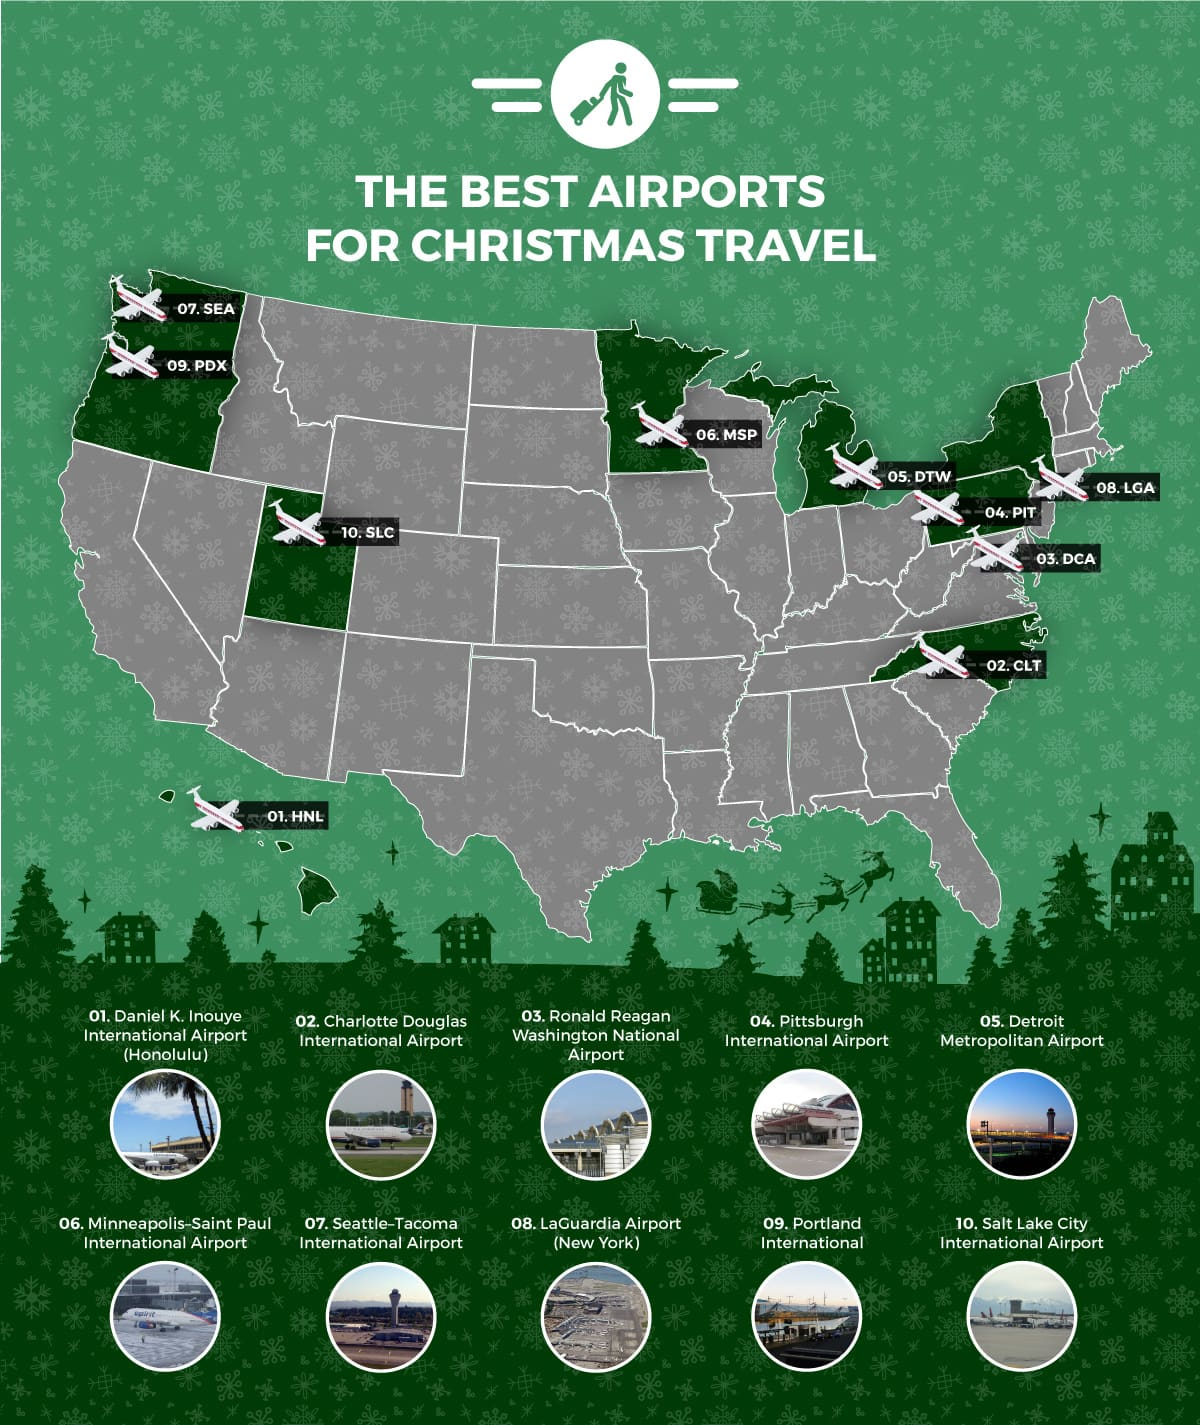 Best airports for Christmas travel 171211